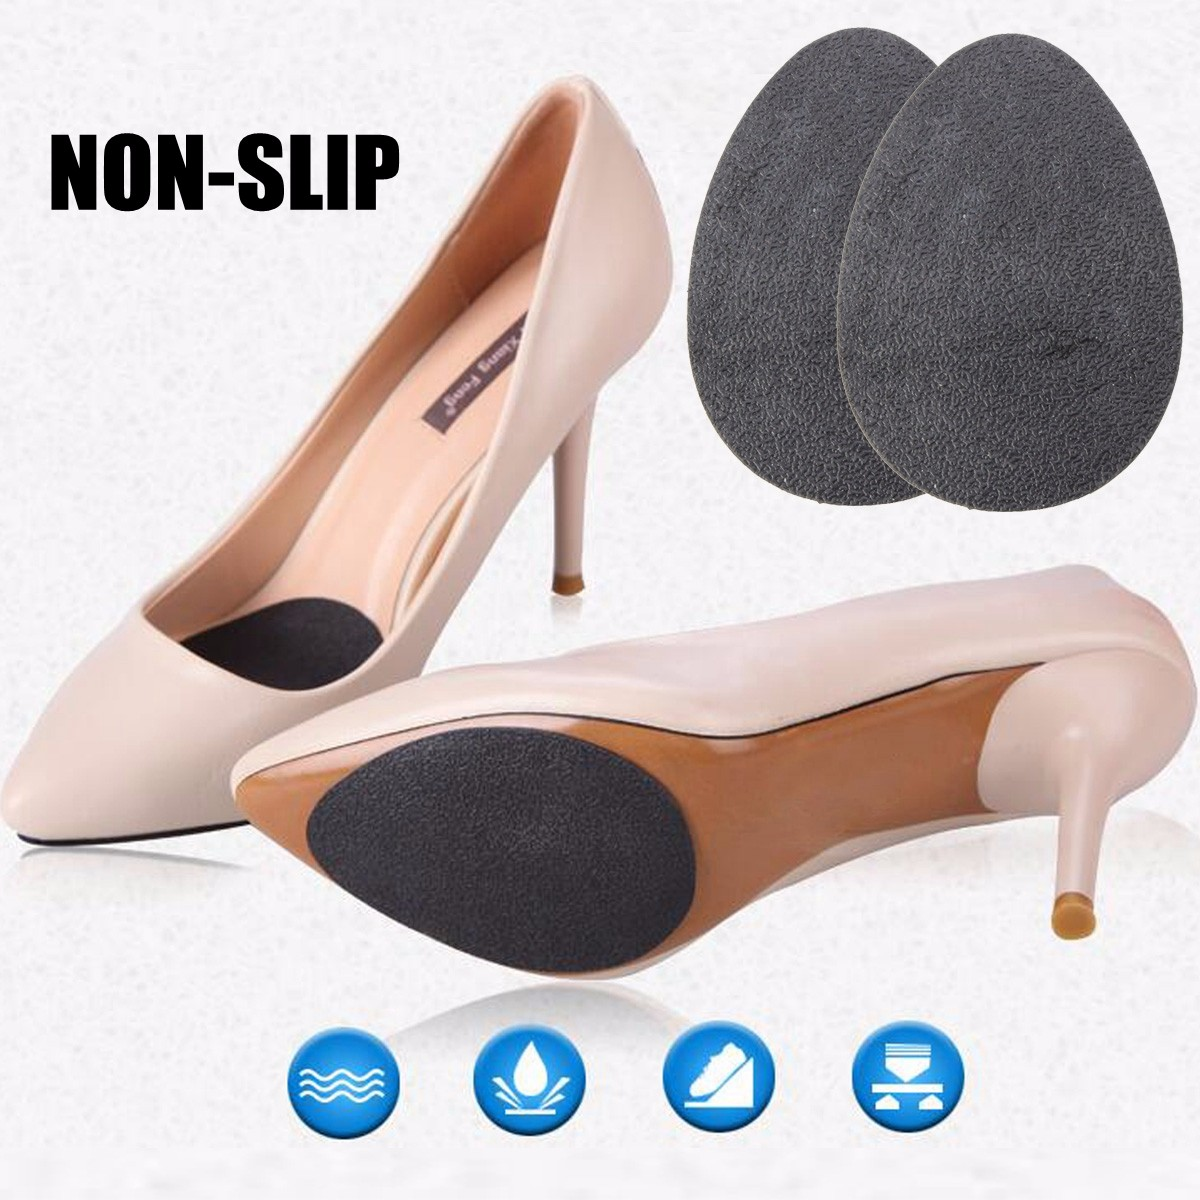 2Pcs Self-Adhesive Anti-Slip Sticky Shoe Grip Pads Non-slip Sole Protector Tape